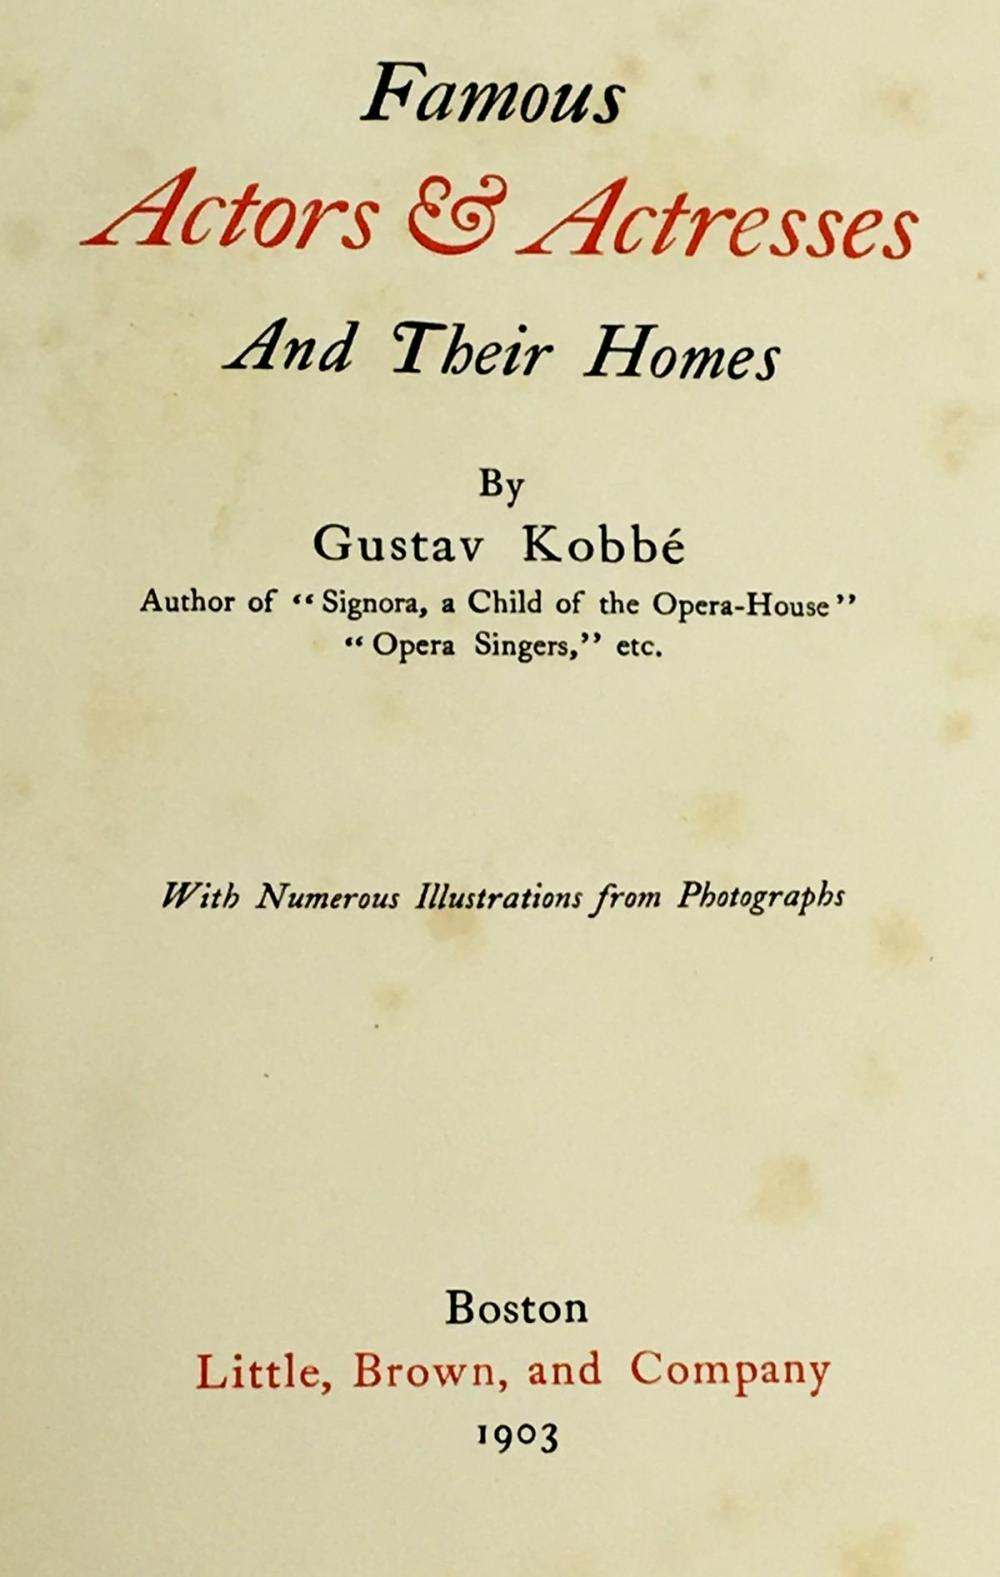 1903 Famous Actors & Actresses and Their Homes by Gustav Kobbe Illustrated FIRST EDITION